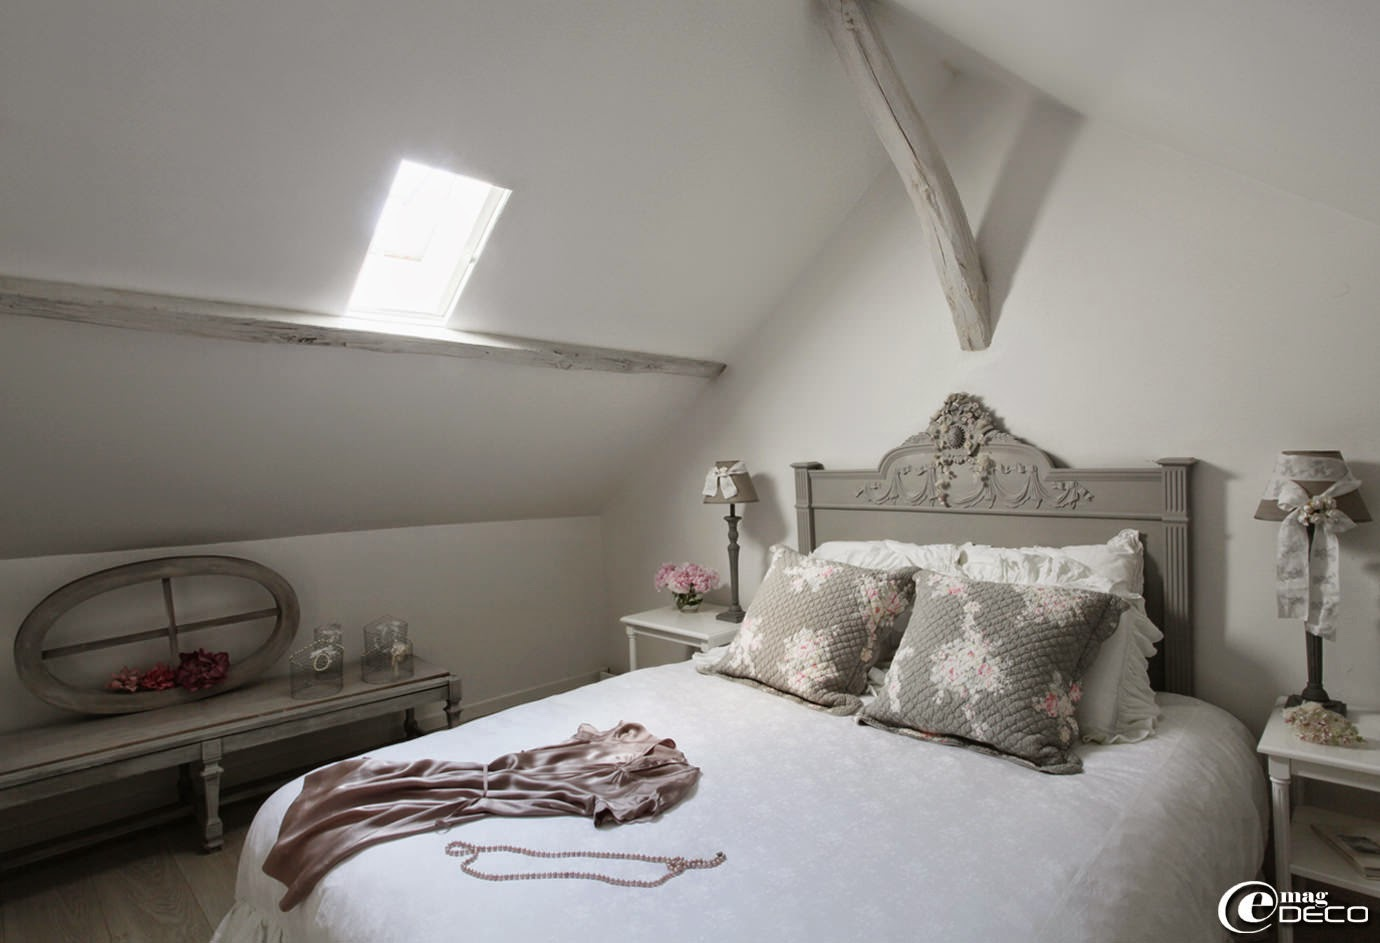 Chambre style campagne anglaise - Chambre ancienne ...